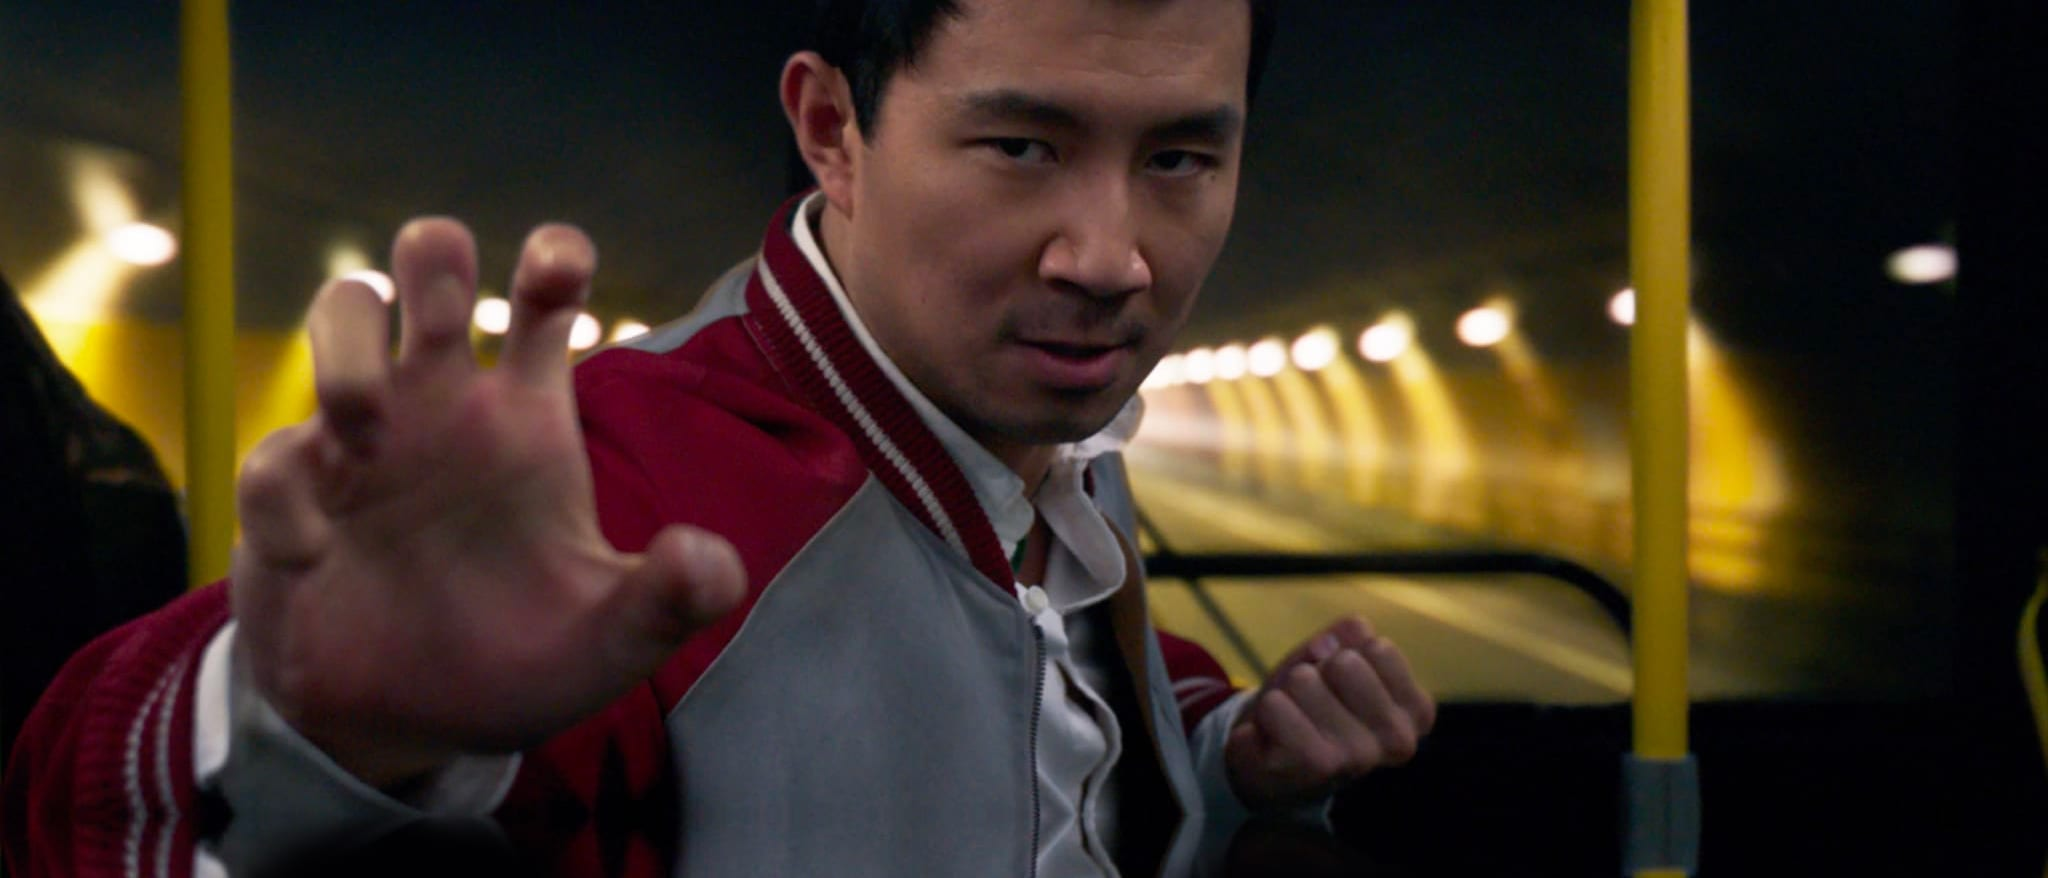 Shang-Chi - Movie Portal Featured Content Banner